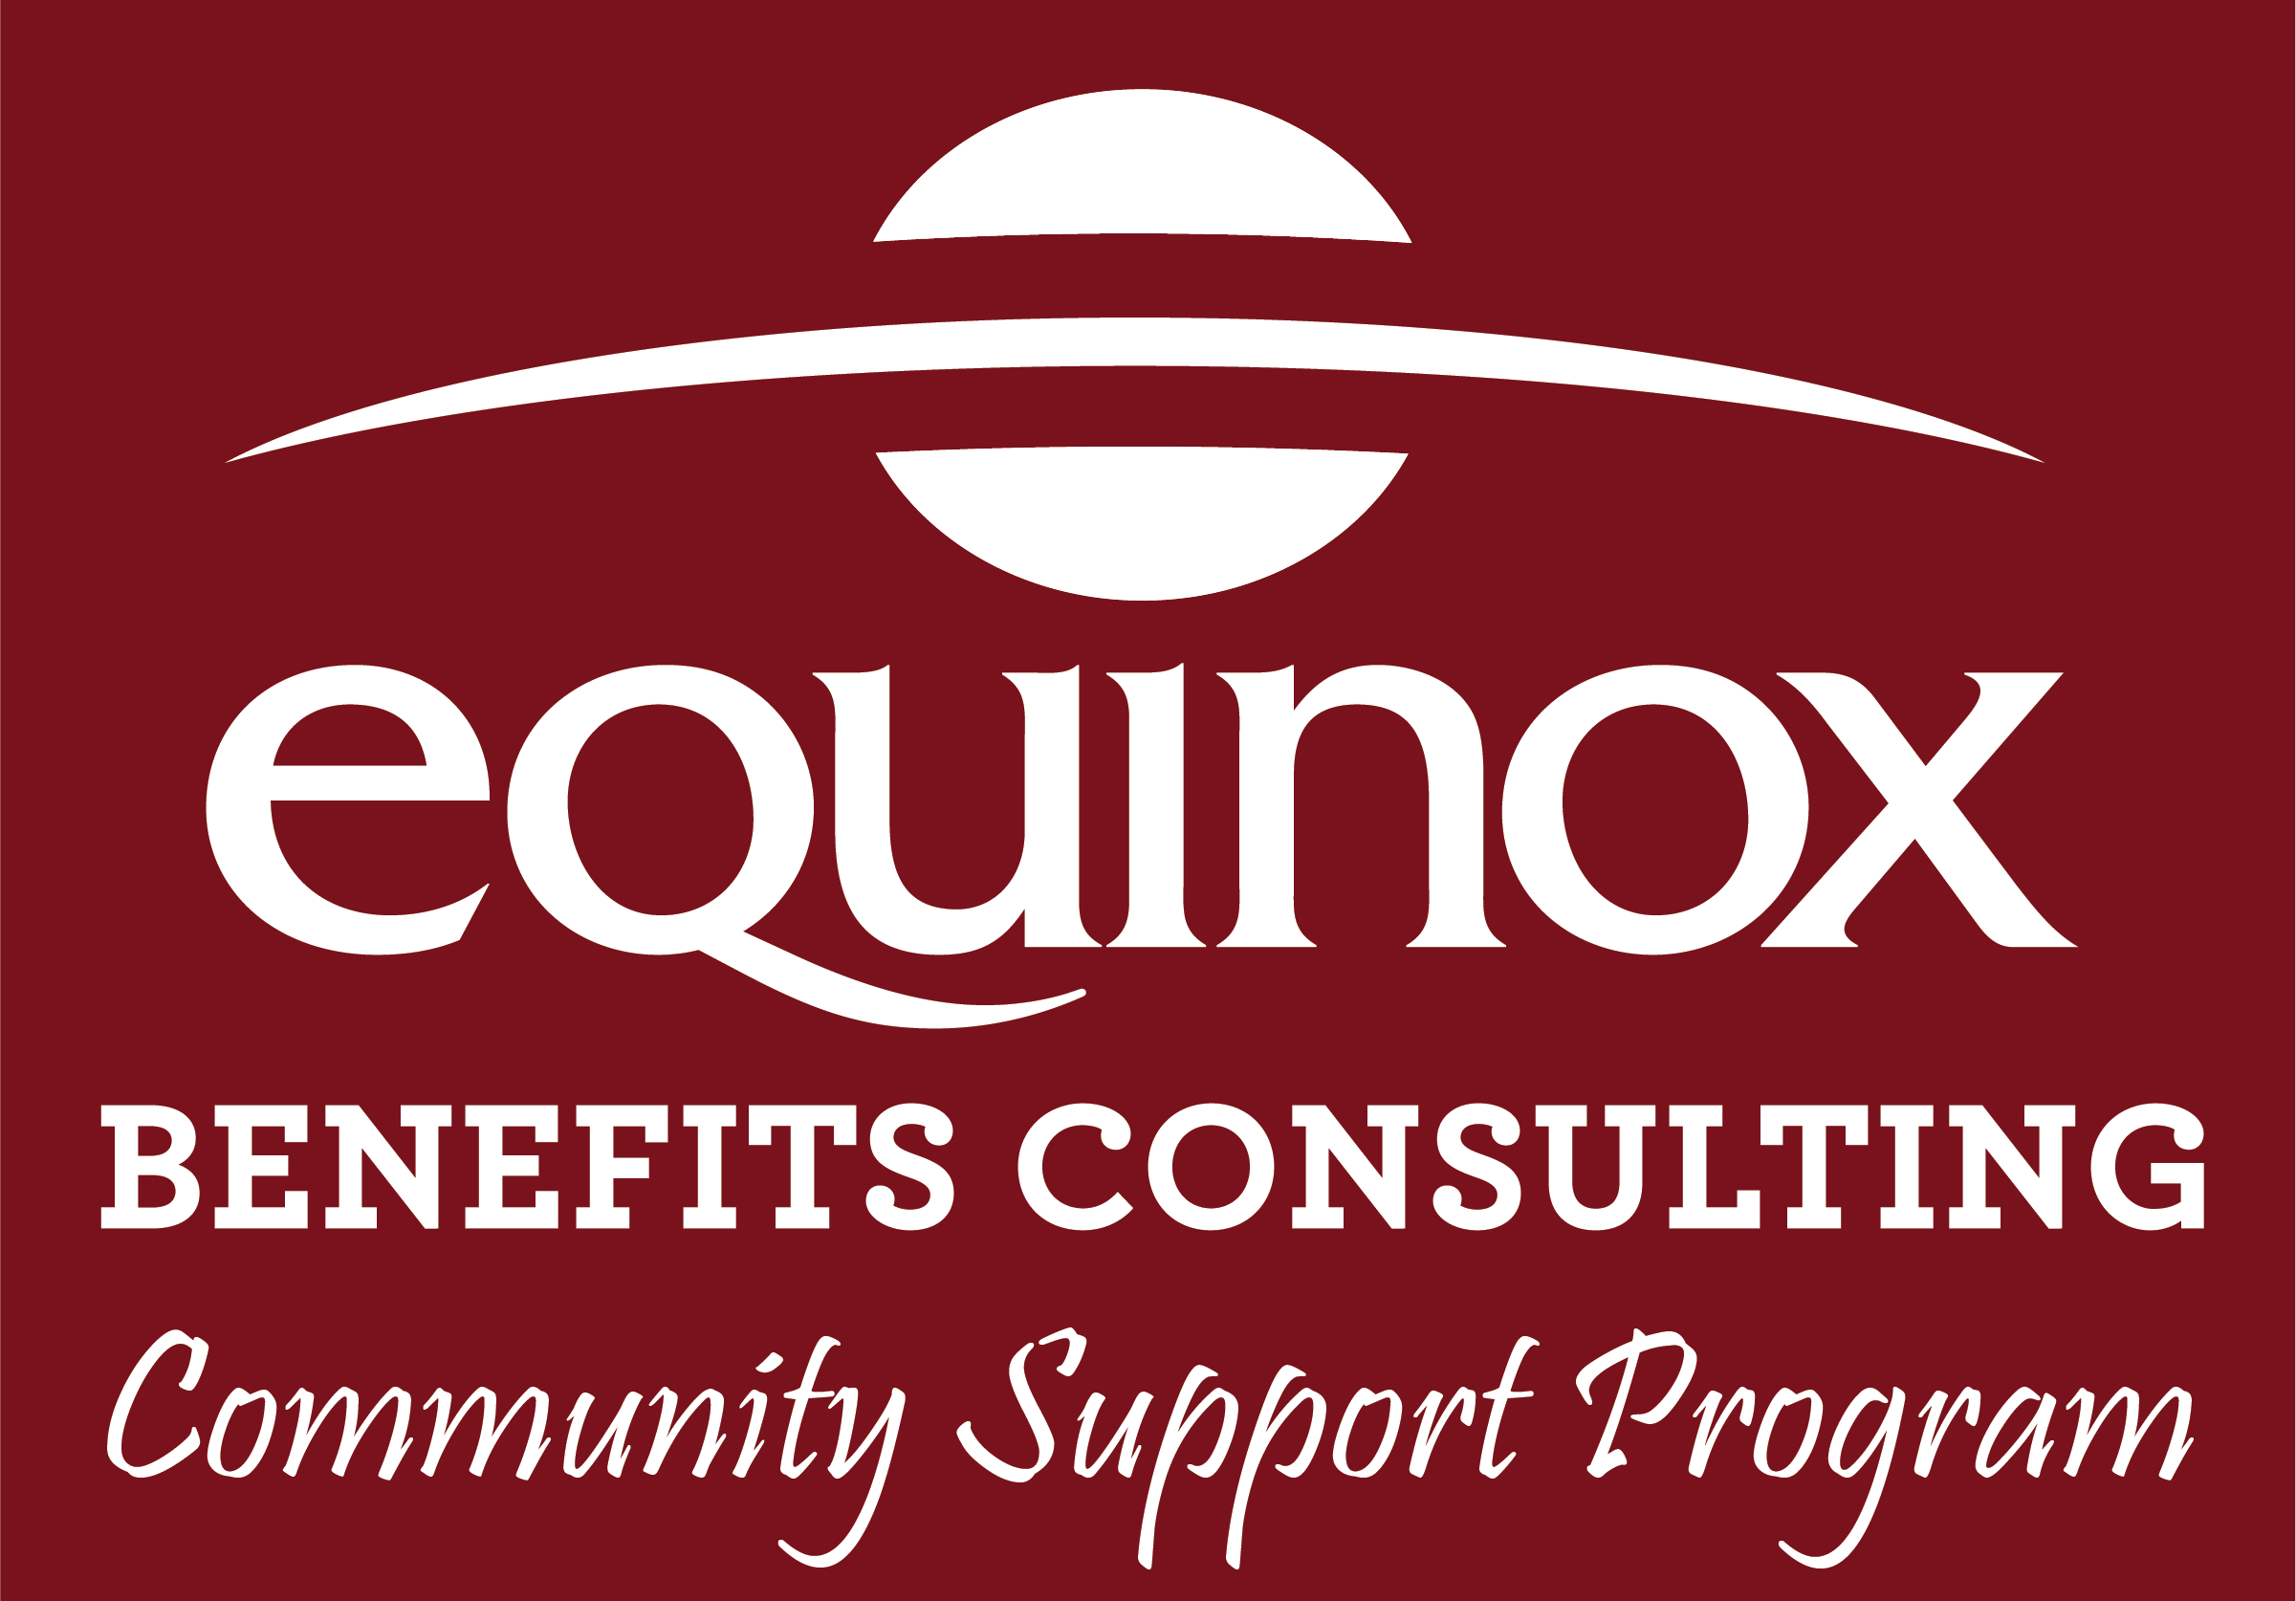 Equinox Benefits Consulting Community Support Program Logo